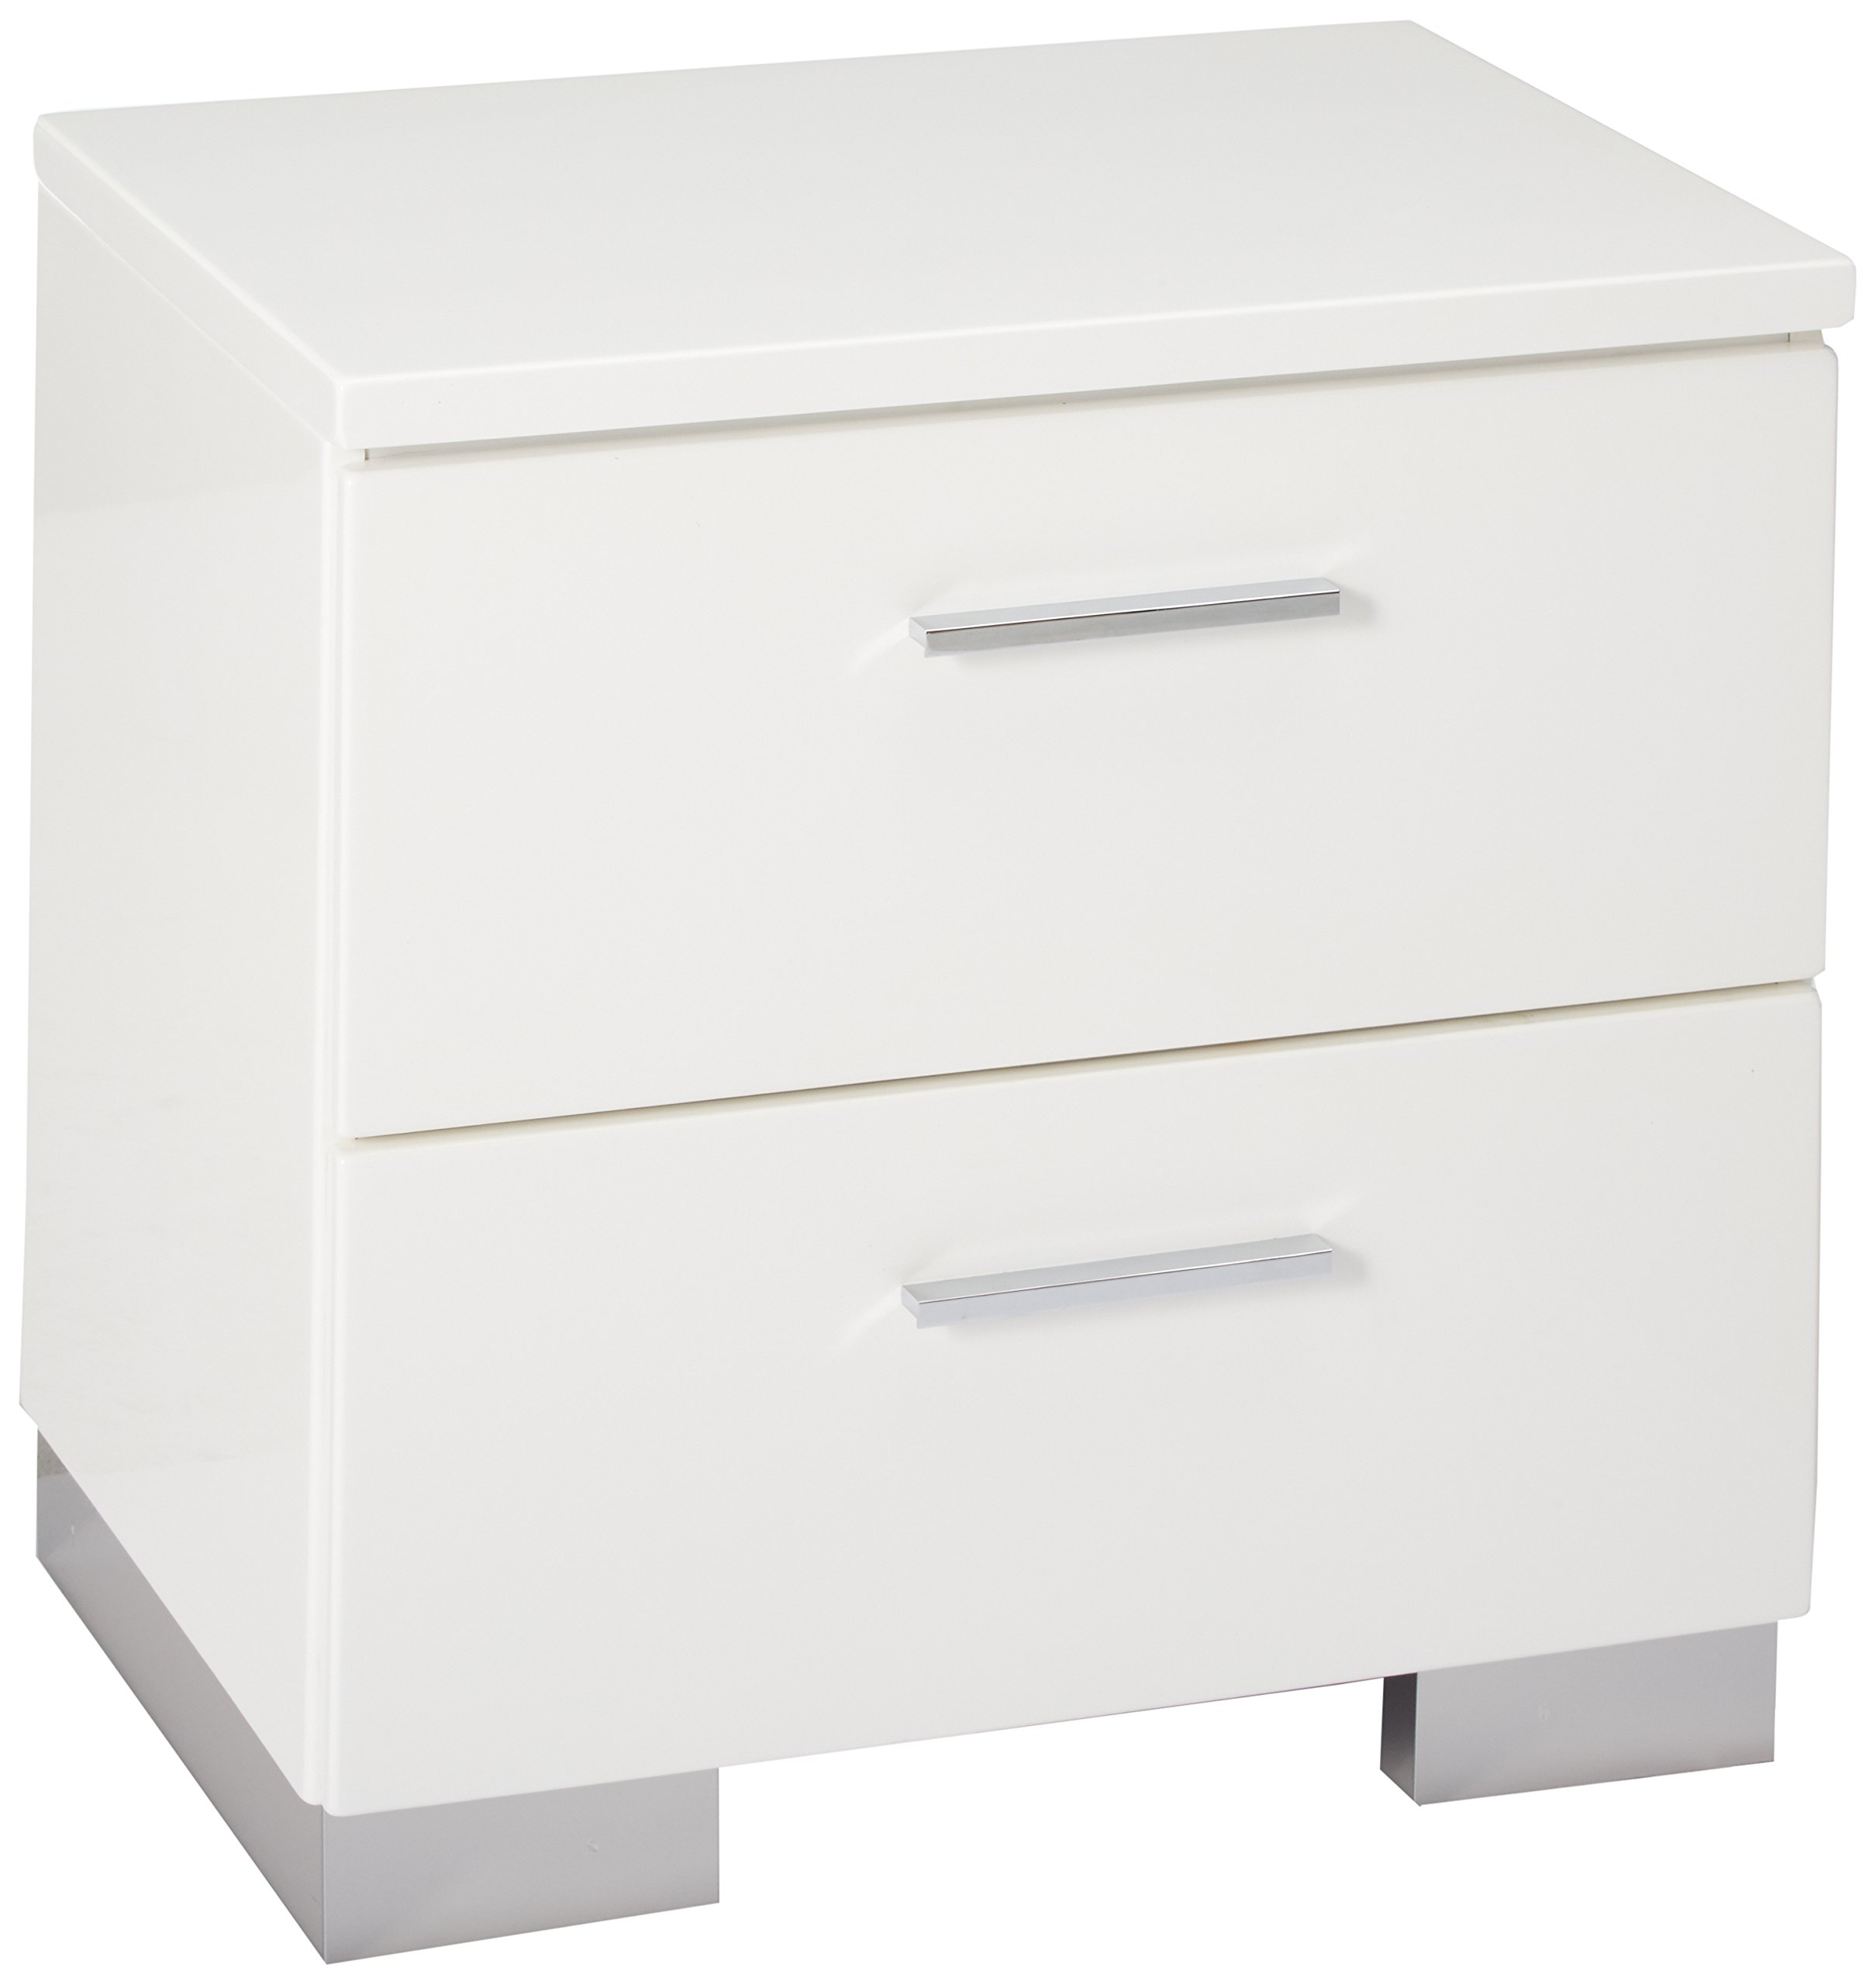 Felicity 2-drawer Nightstand Glossy White by Coaster Home Furnishings